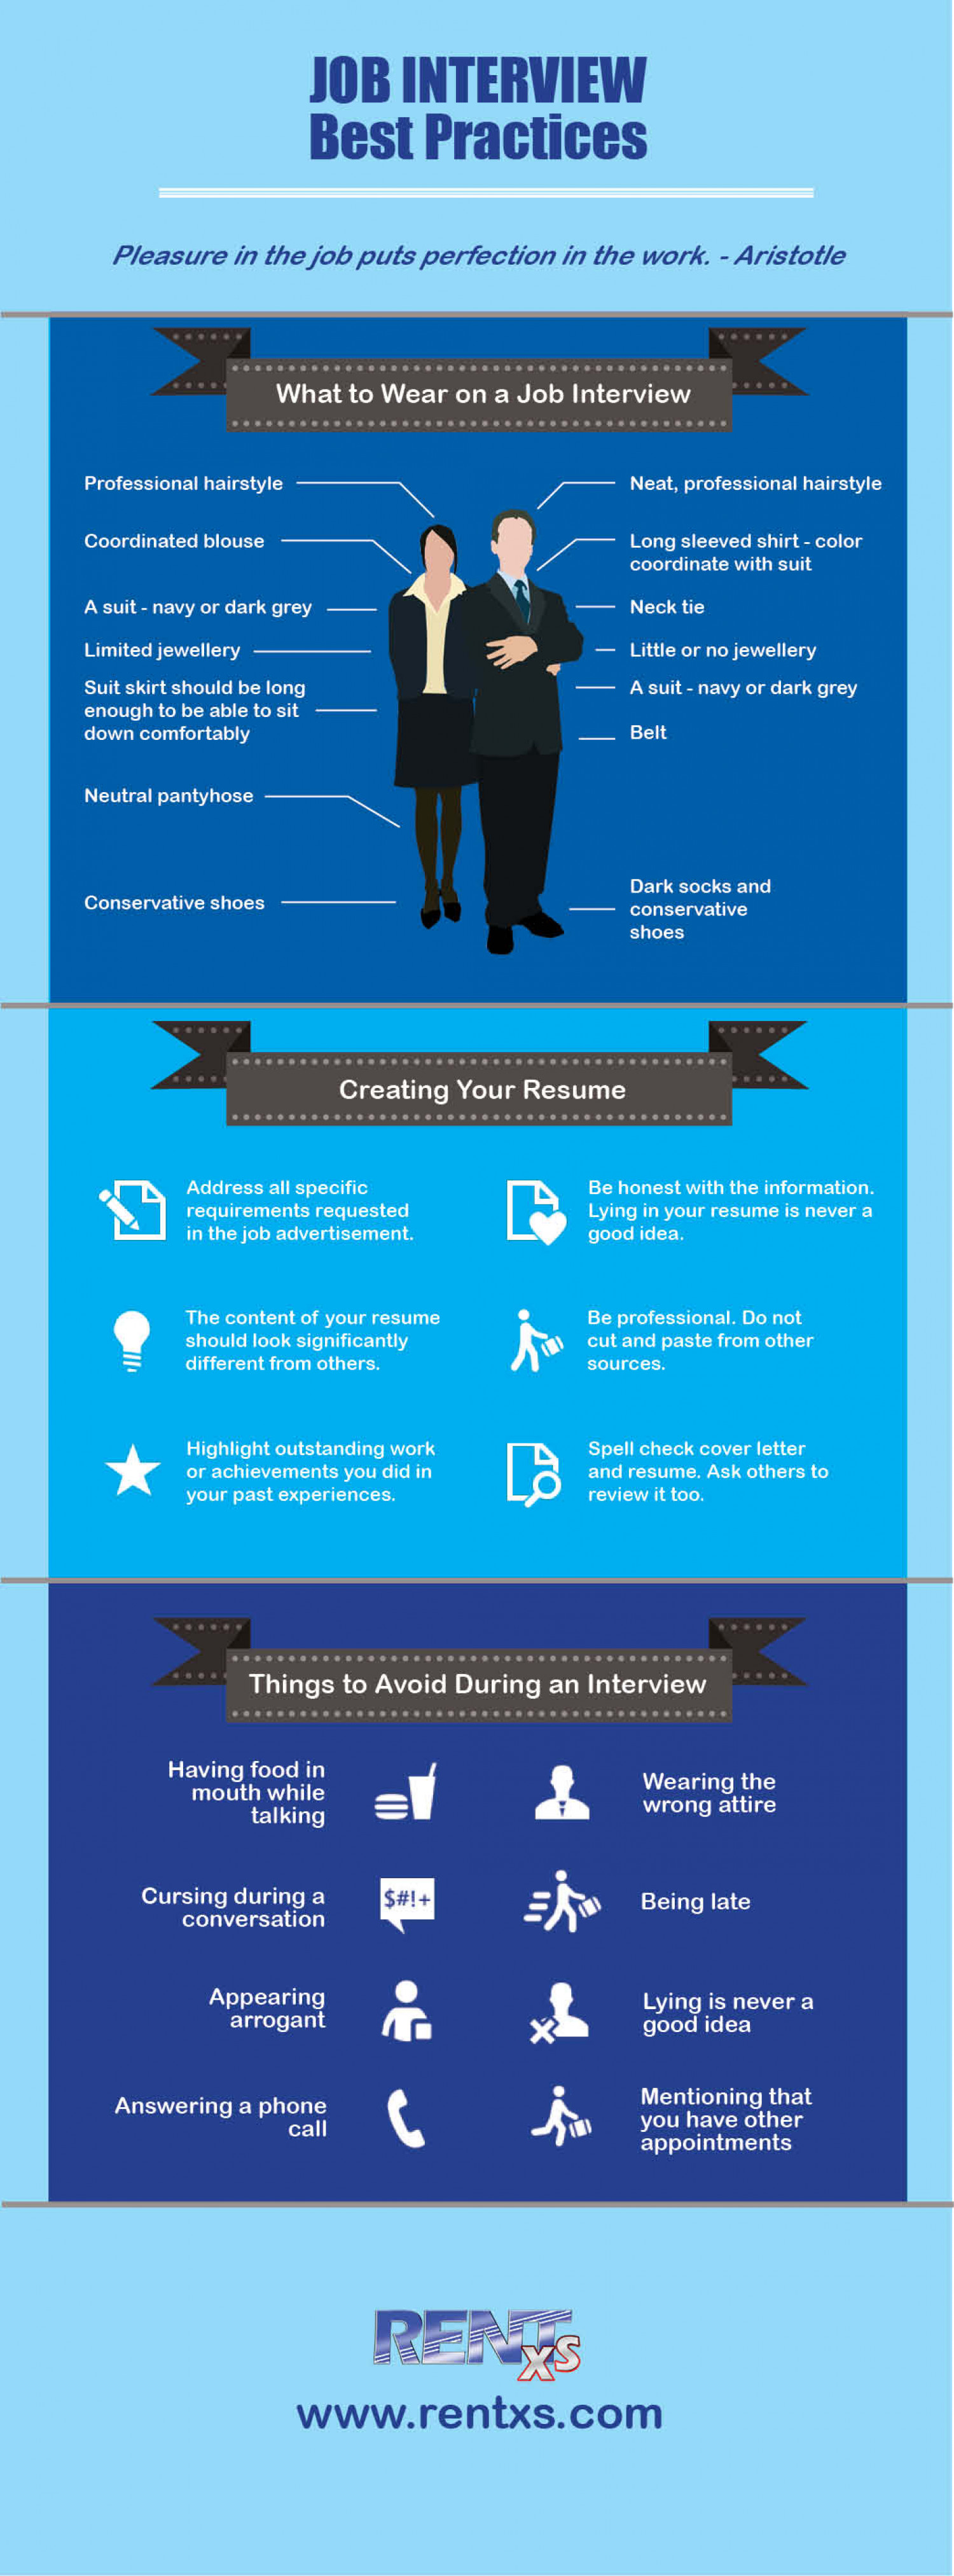 Job Interview Best Practices Infographic